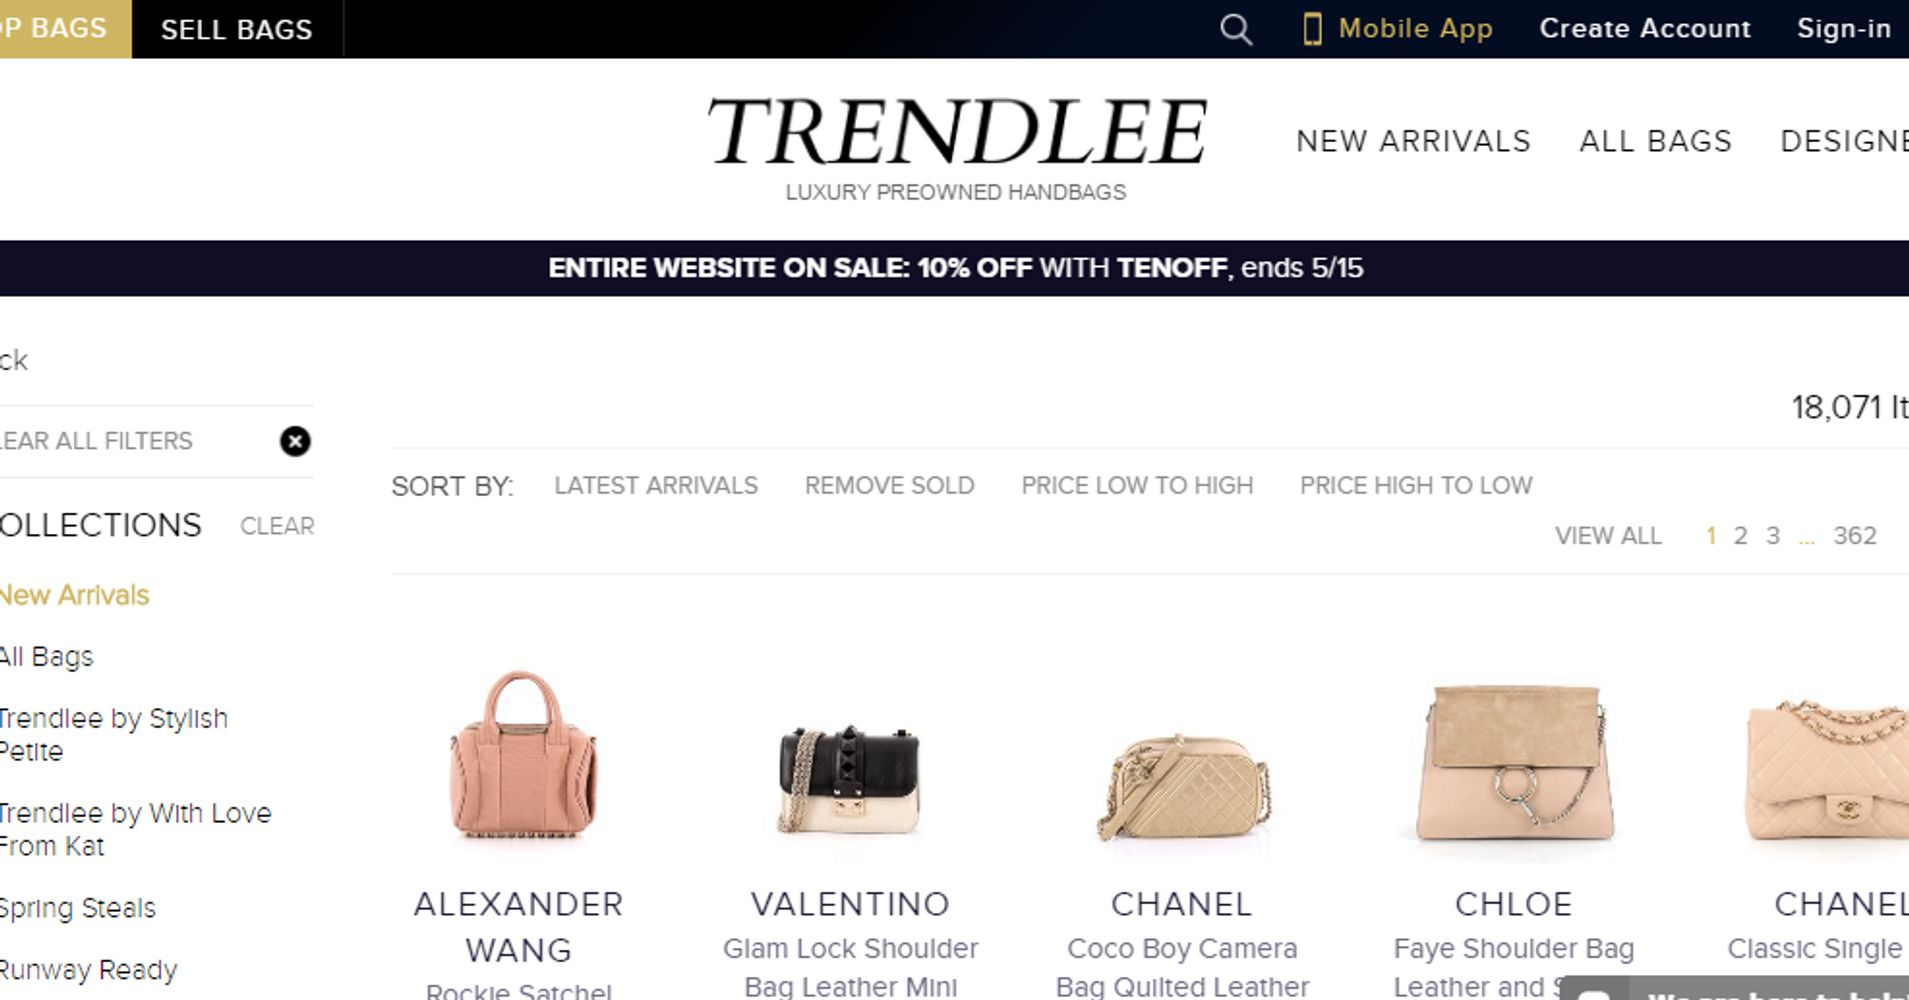 4338a79050a3 The Growth of Luxury Resale: An Interview With Trendlee's Co-Founder |  HuffPost